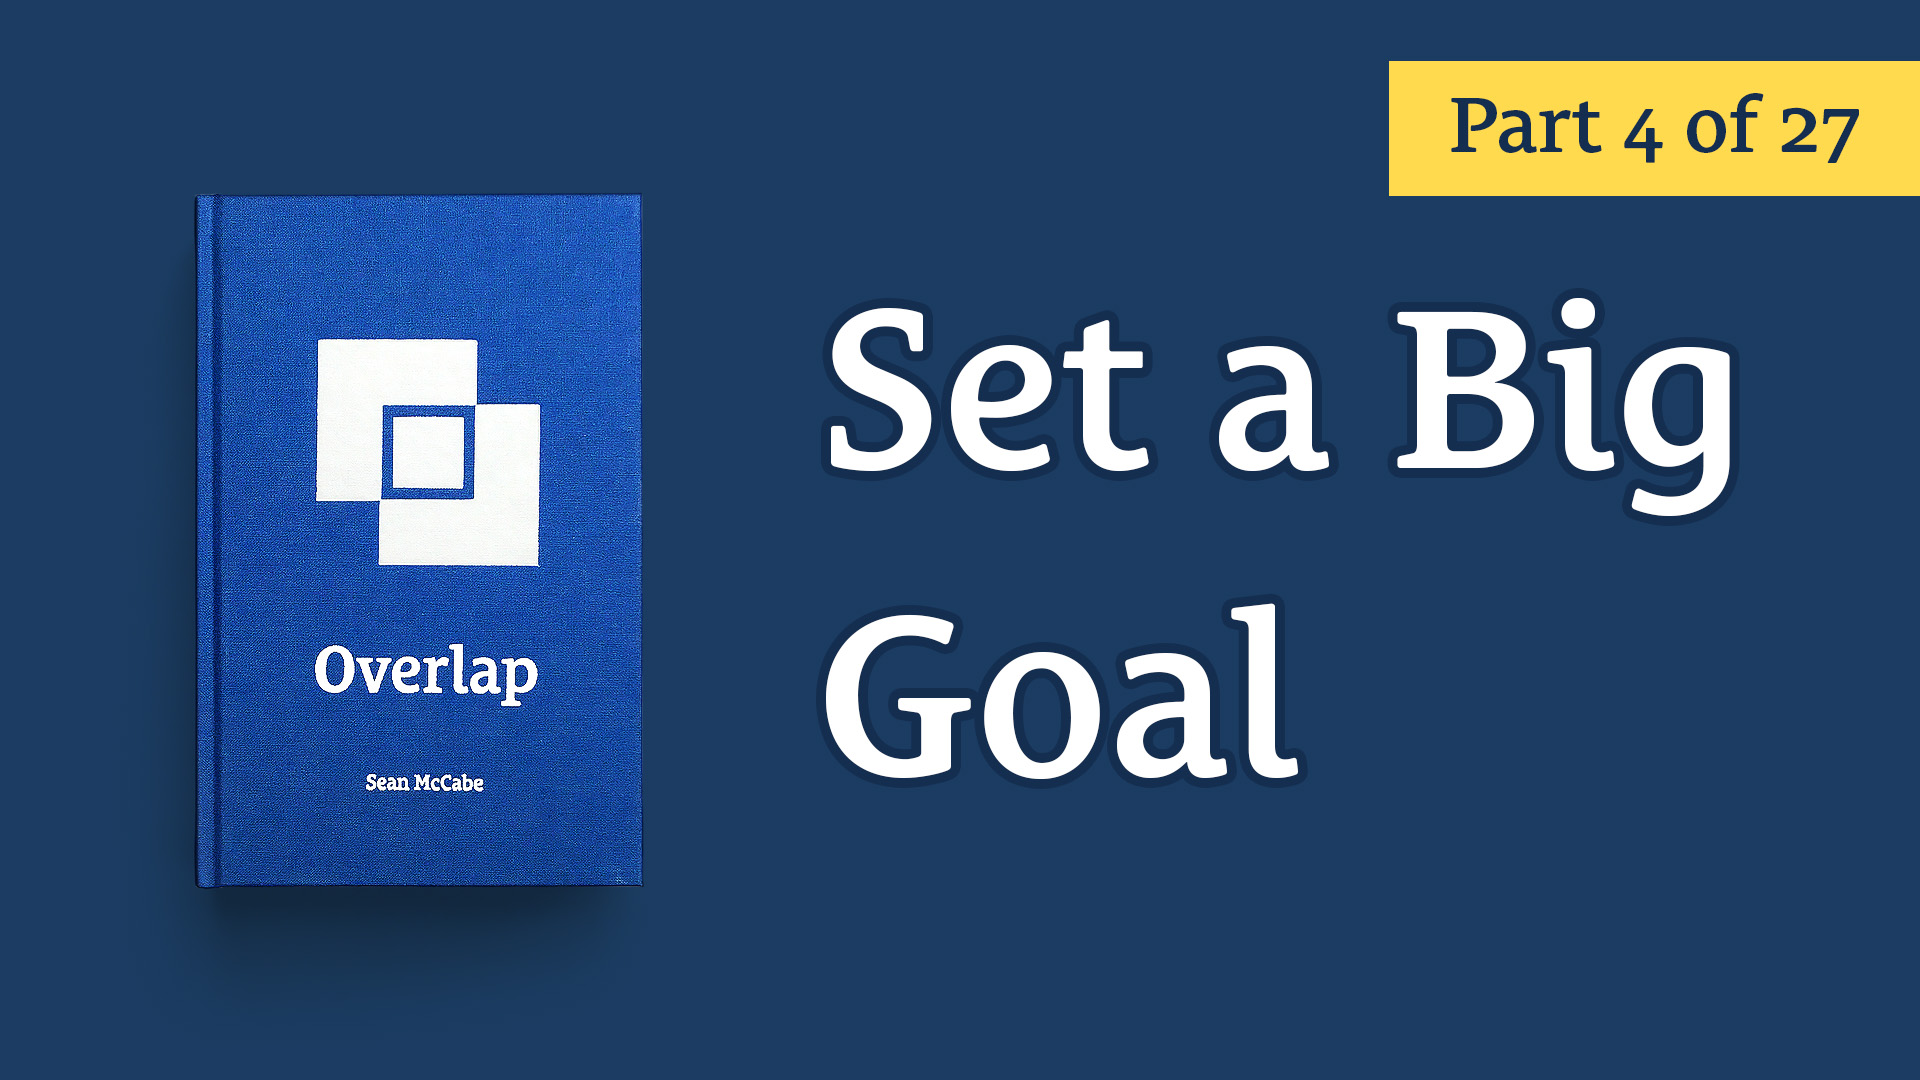 Set a Big Goal - Overlap #4